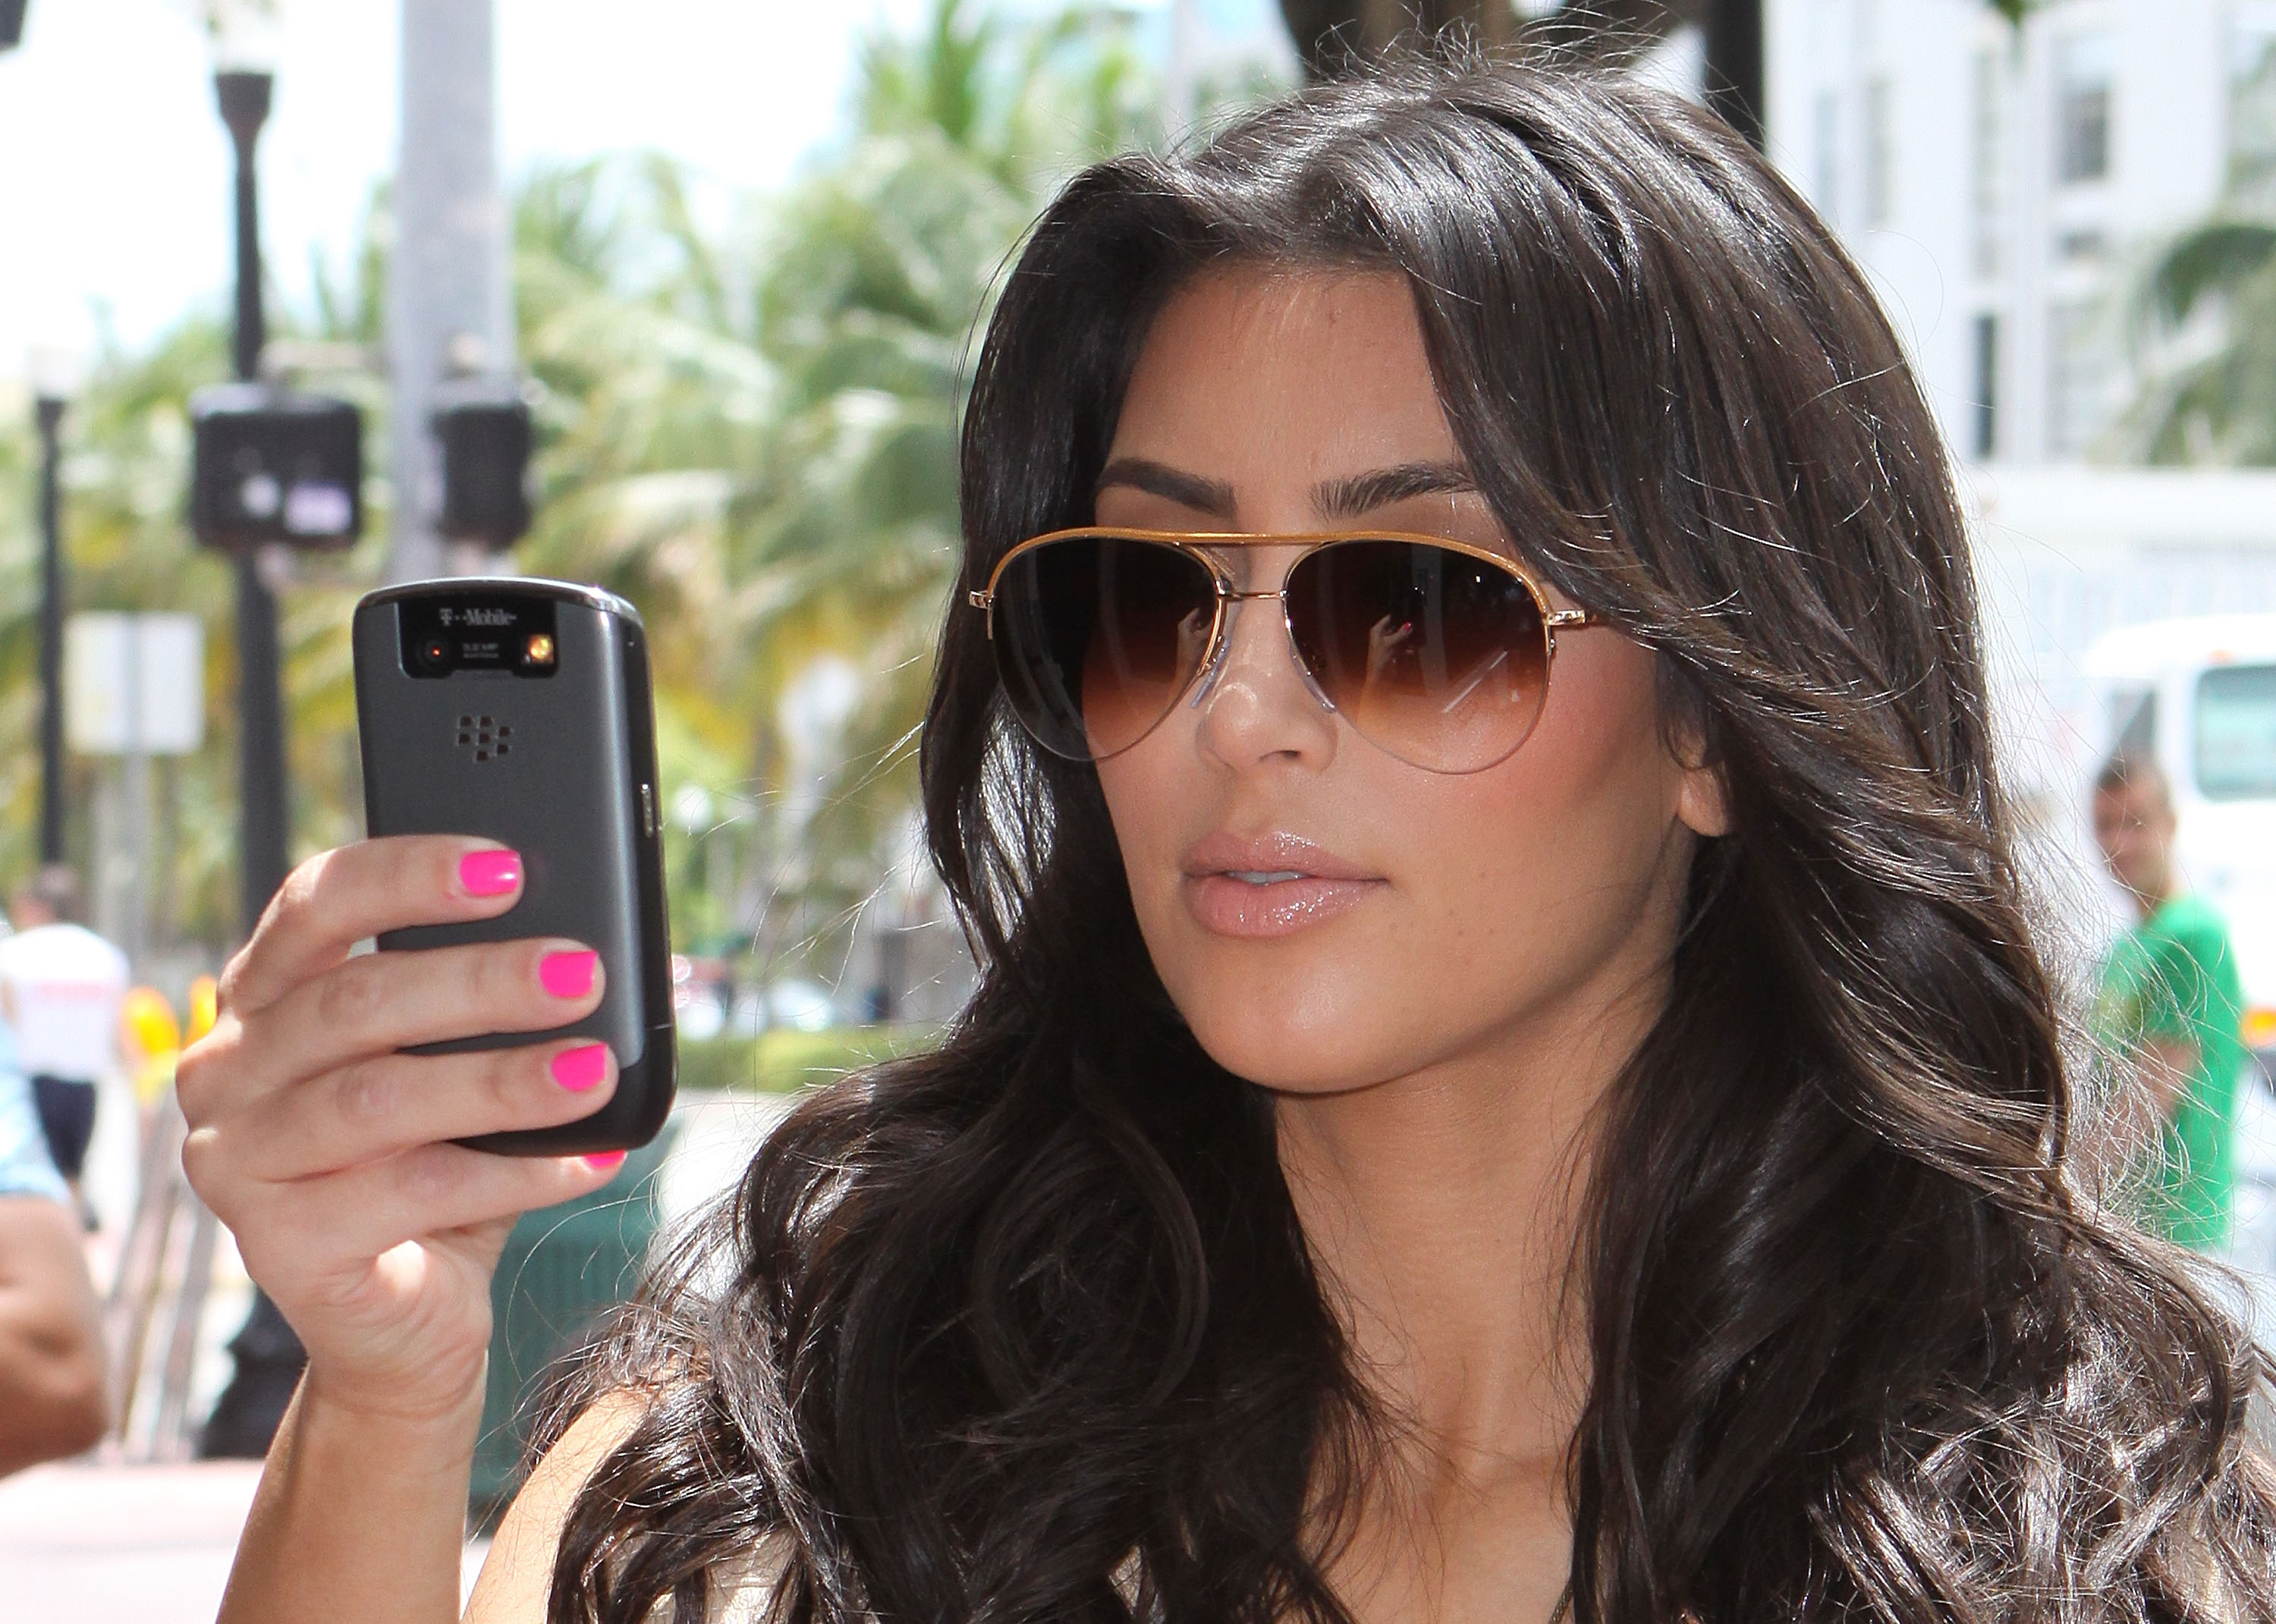 MIAMI BEACH, FL - MAY 19:  Television personality Kim Kardashian takes a picture of graffiti vandalism done to her new store on May 19, 2009 in Miami Beach, Florida.  (Photo by Mike Franklin/FilmMagic)